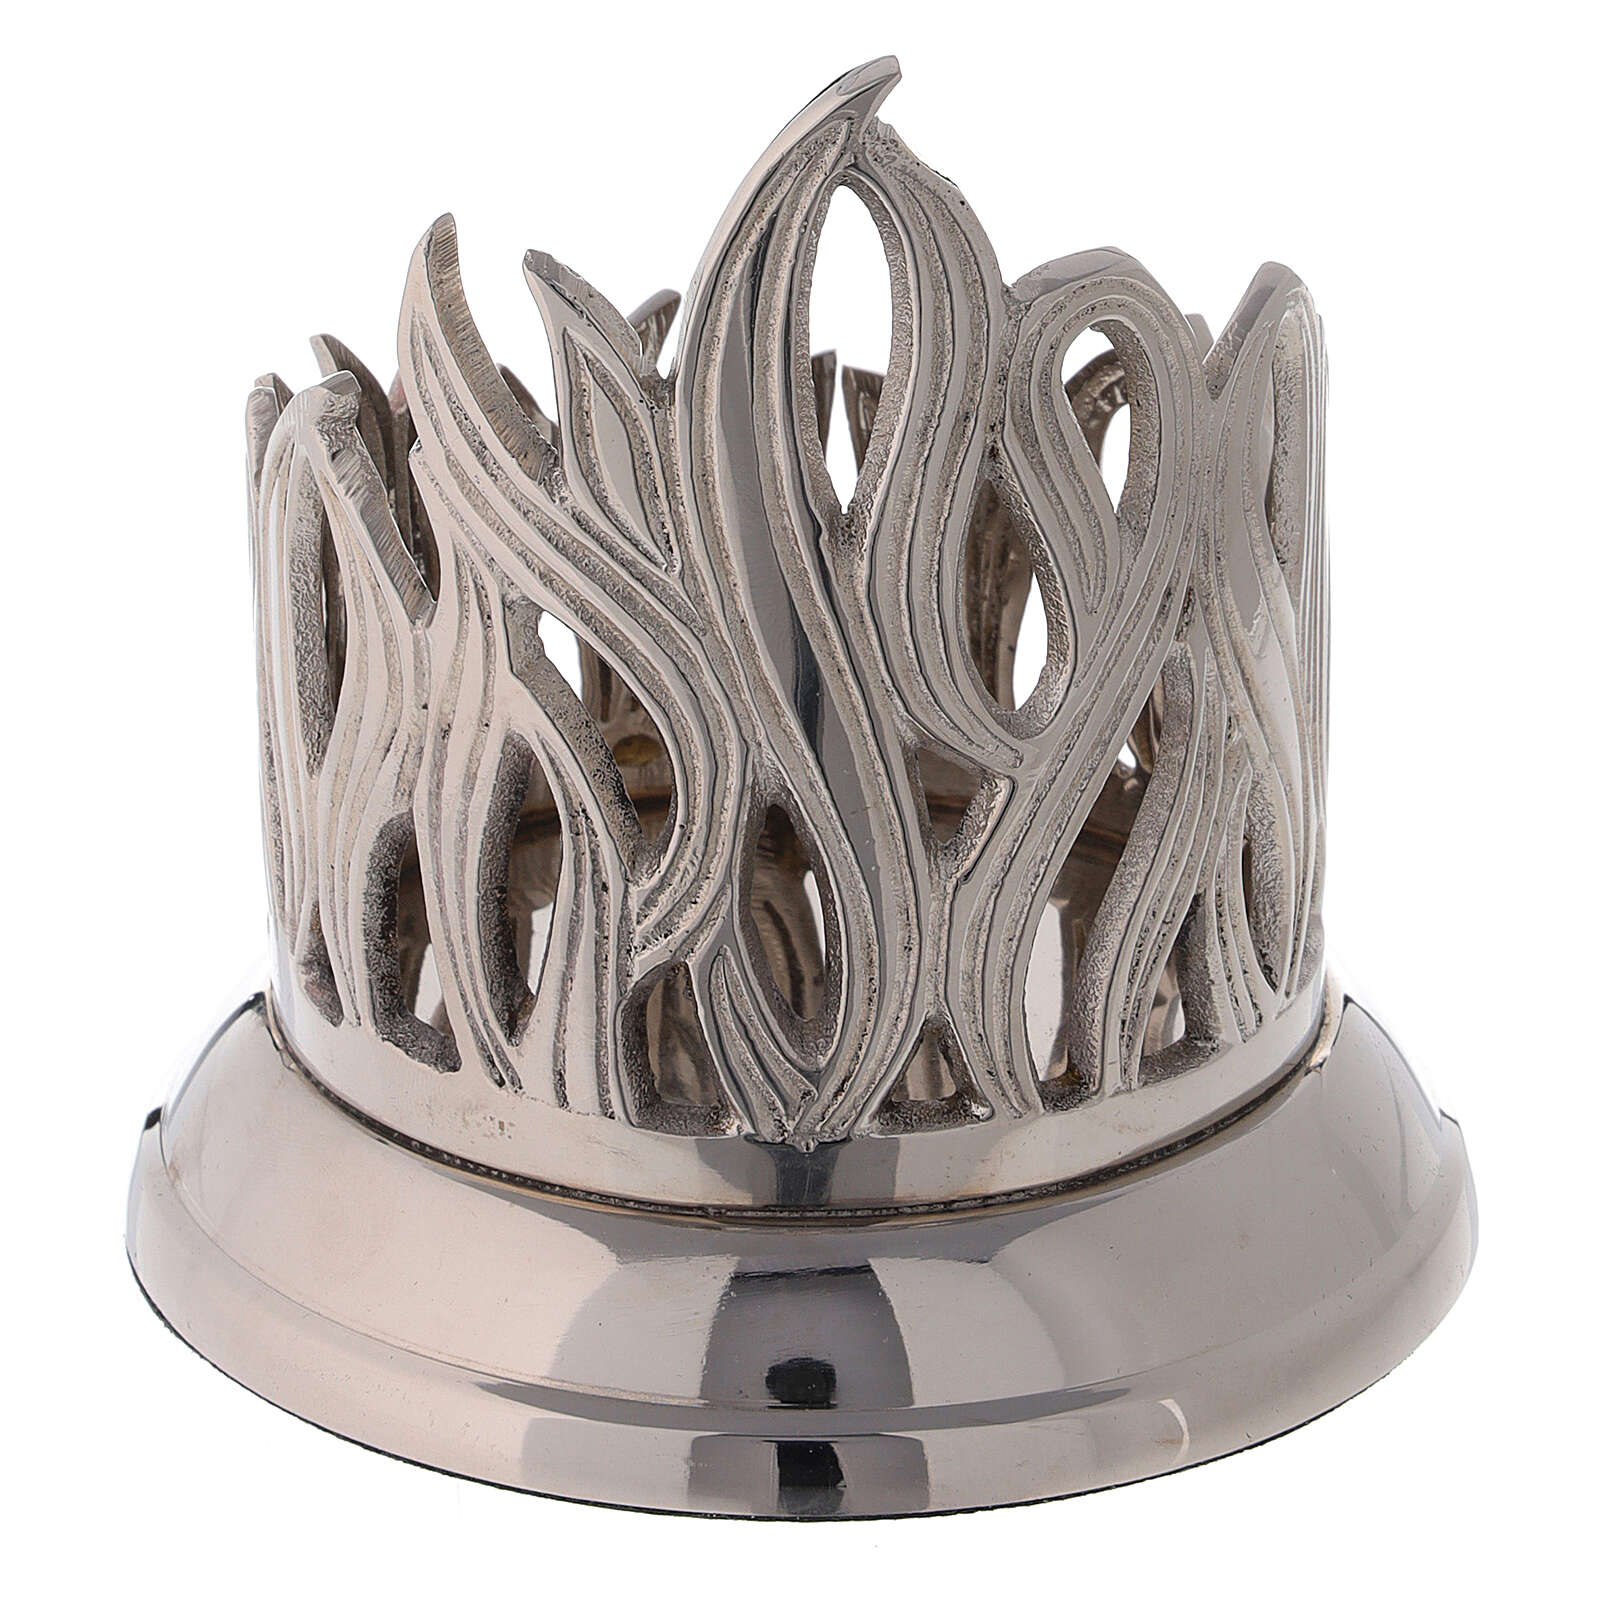 Flame pattern candle holder diameter 3 in nickel-plated brass 4